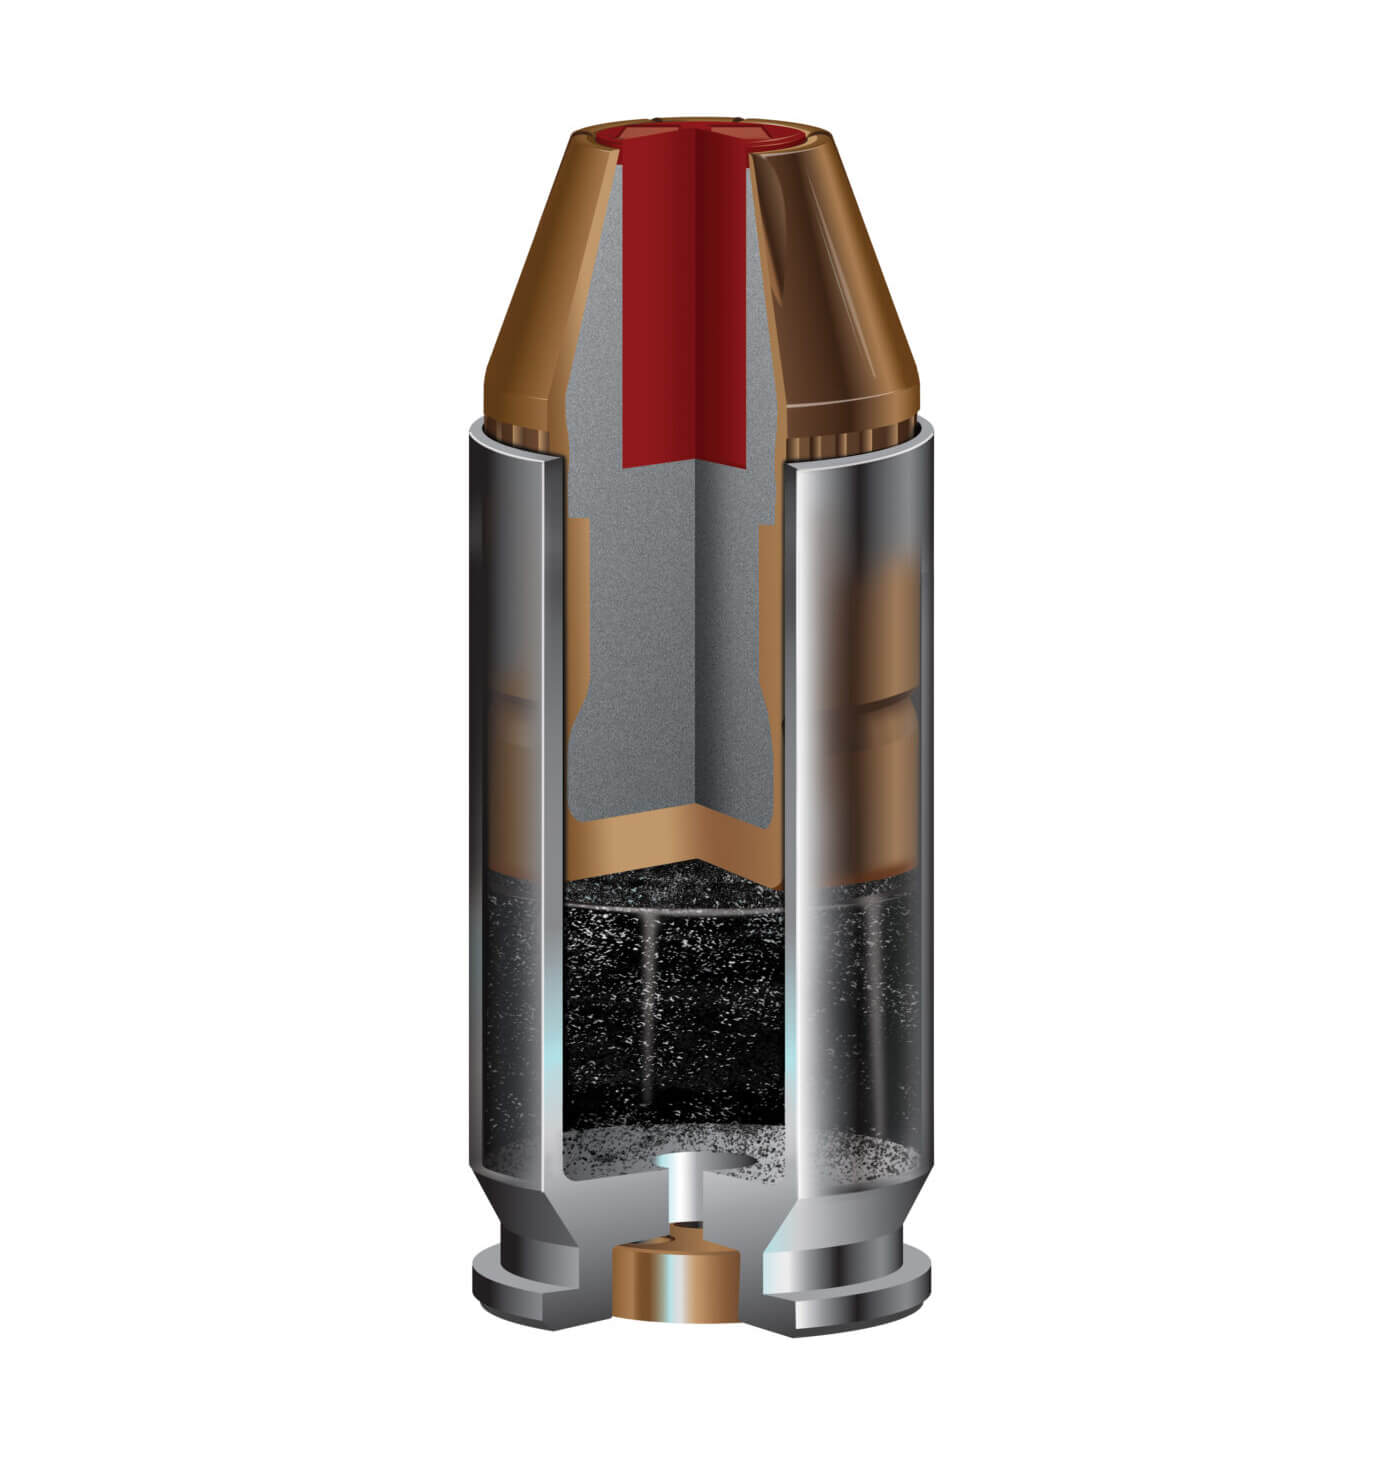 Cross section of a cartridge showing how a bullet works